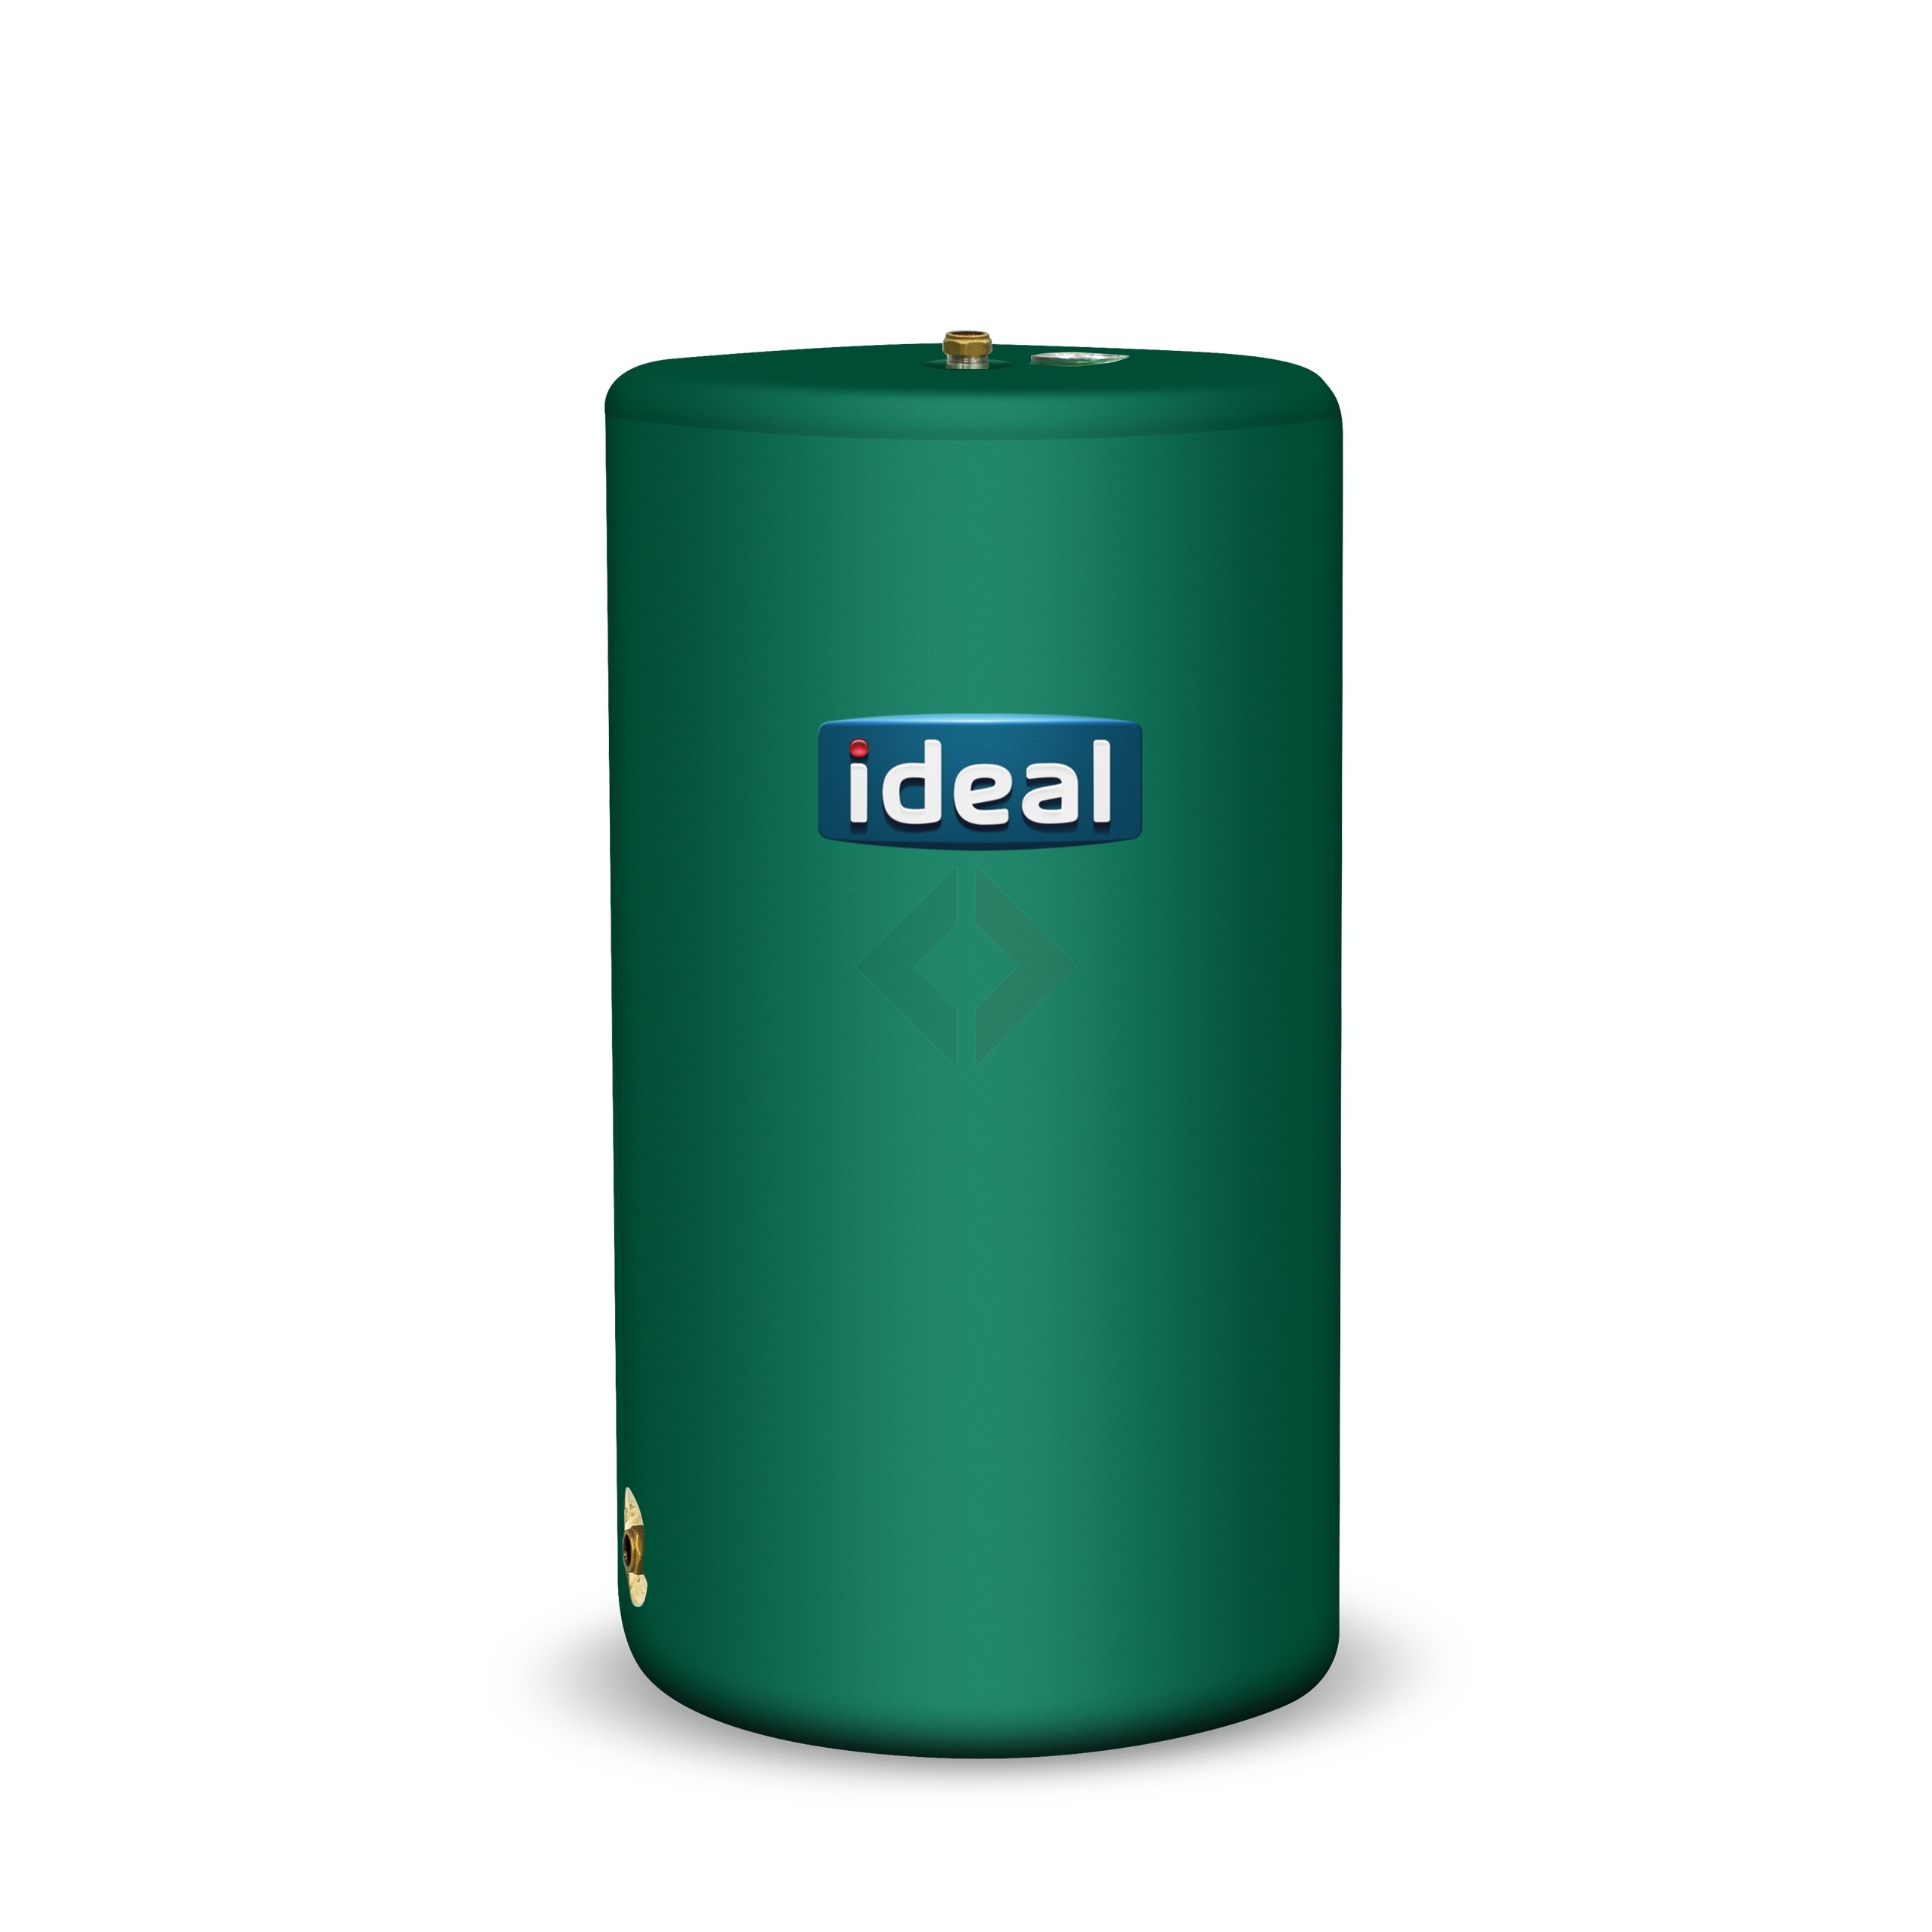 Ideal 1200 x 450 Indirect Stainless Steel Vented Cylinder, Easy Pack